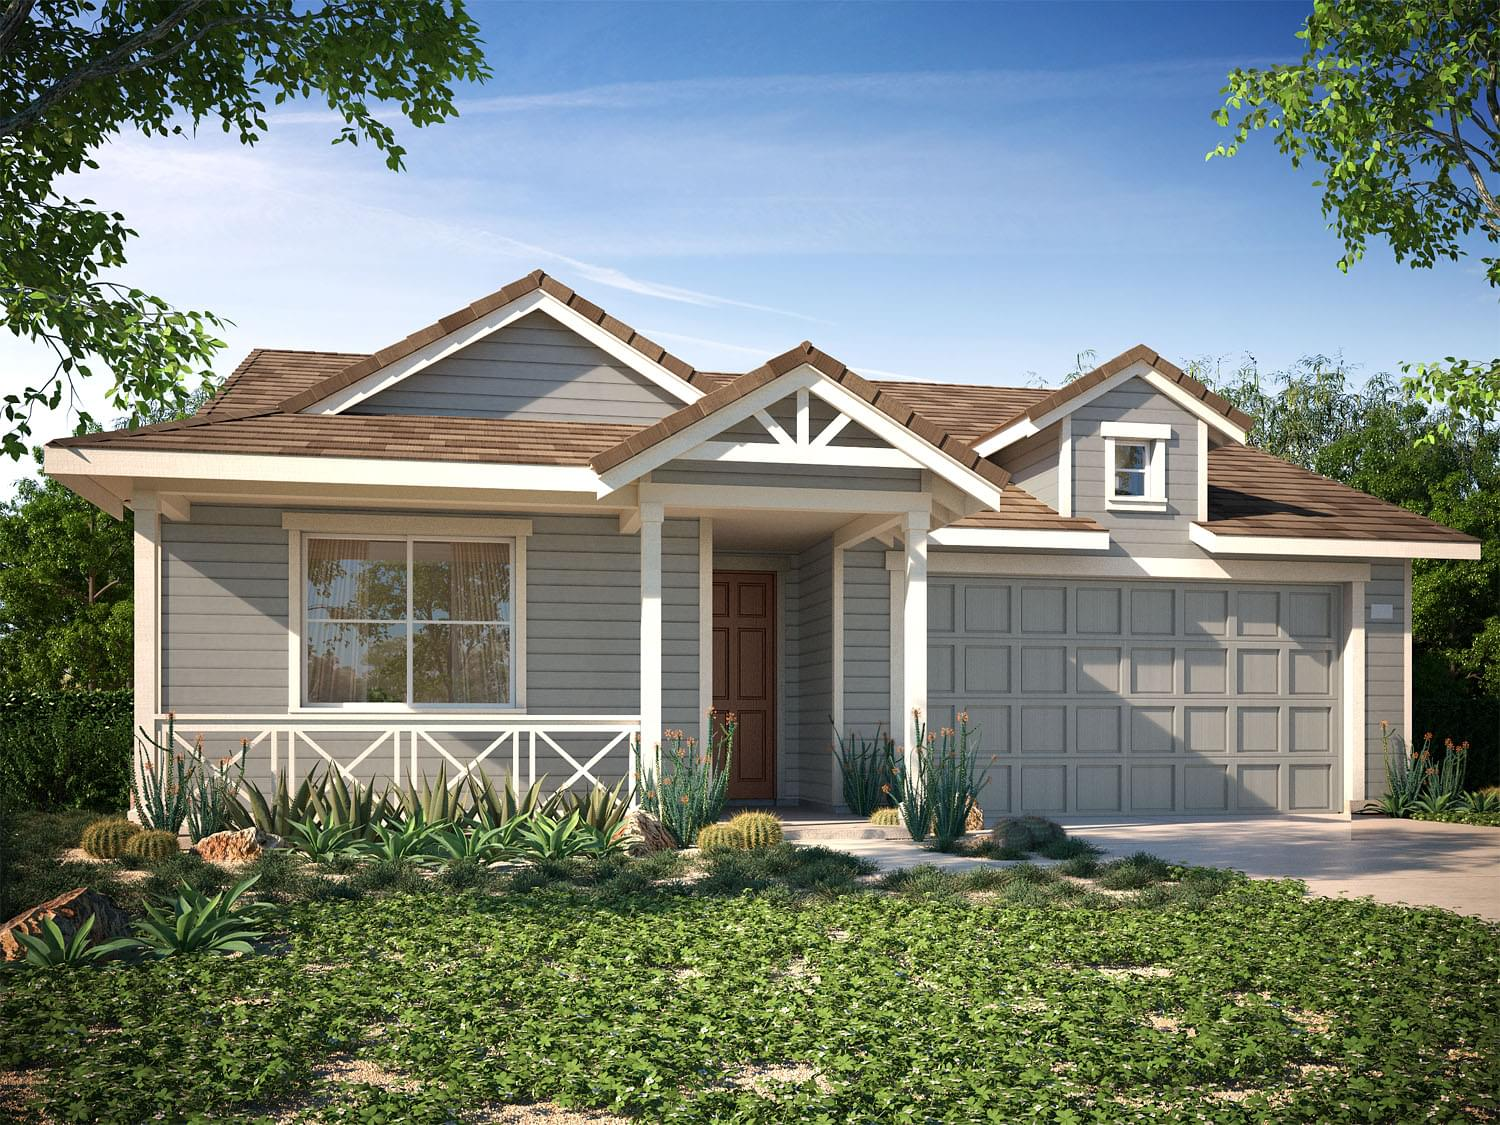 532 Spyglass Circle in Angels Camp, CA by DeNova Homes